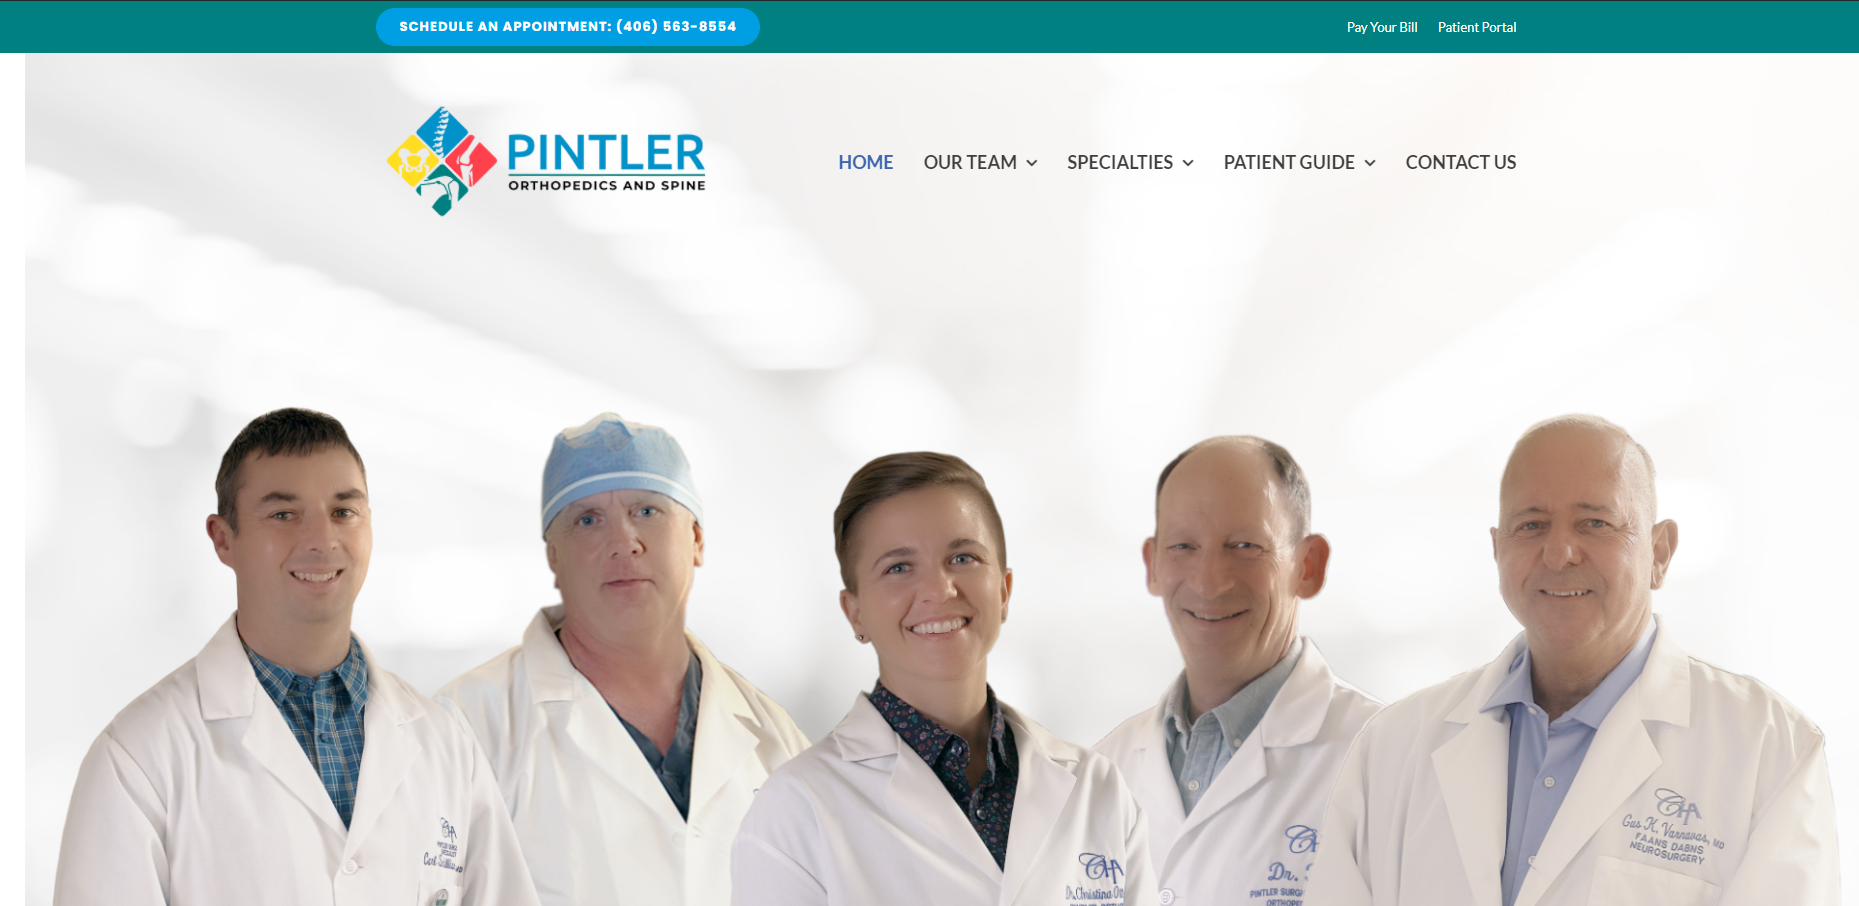 Pintler Orthopedics and Spine – Anaconda, Montana